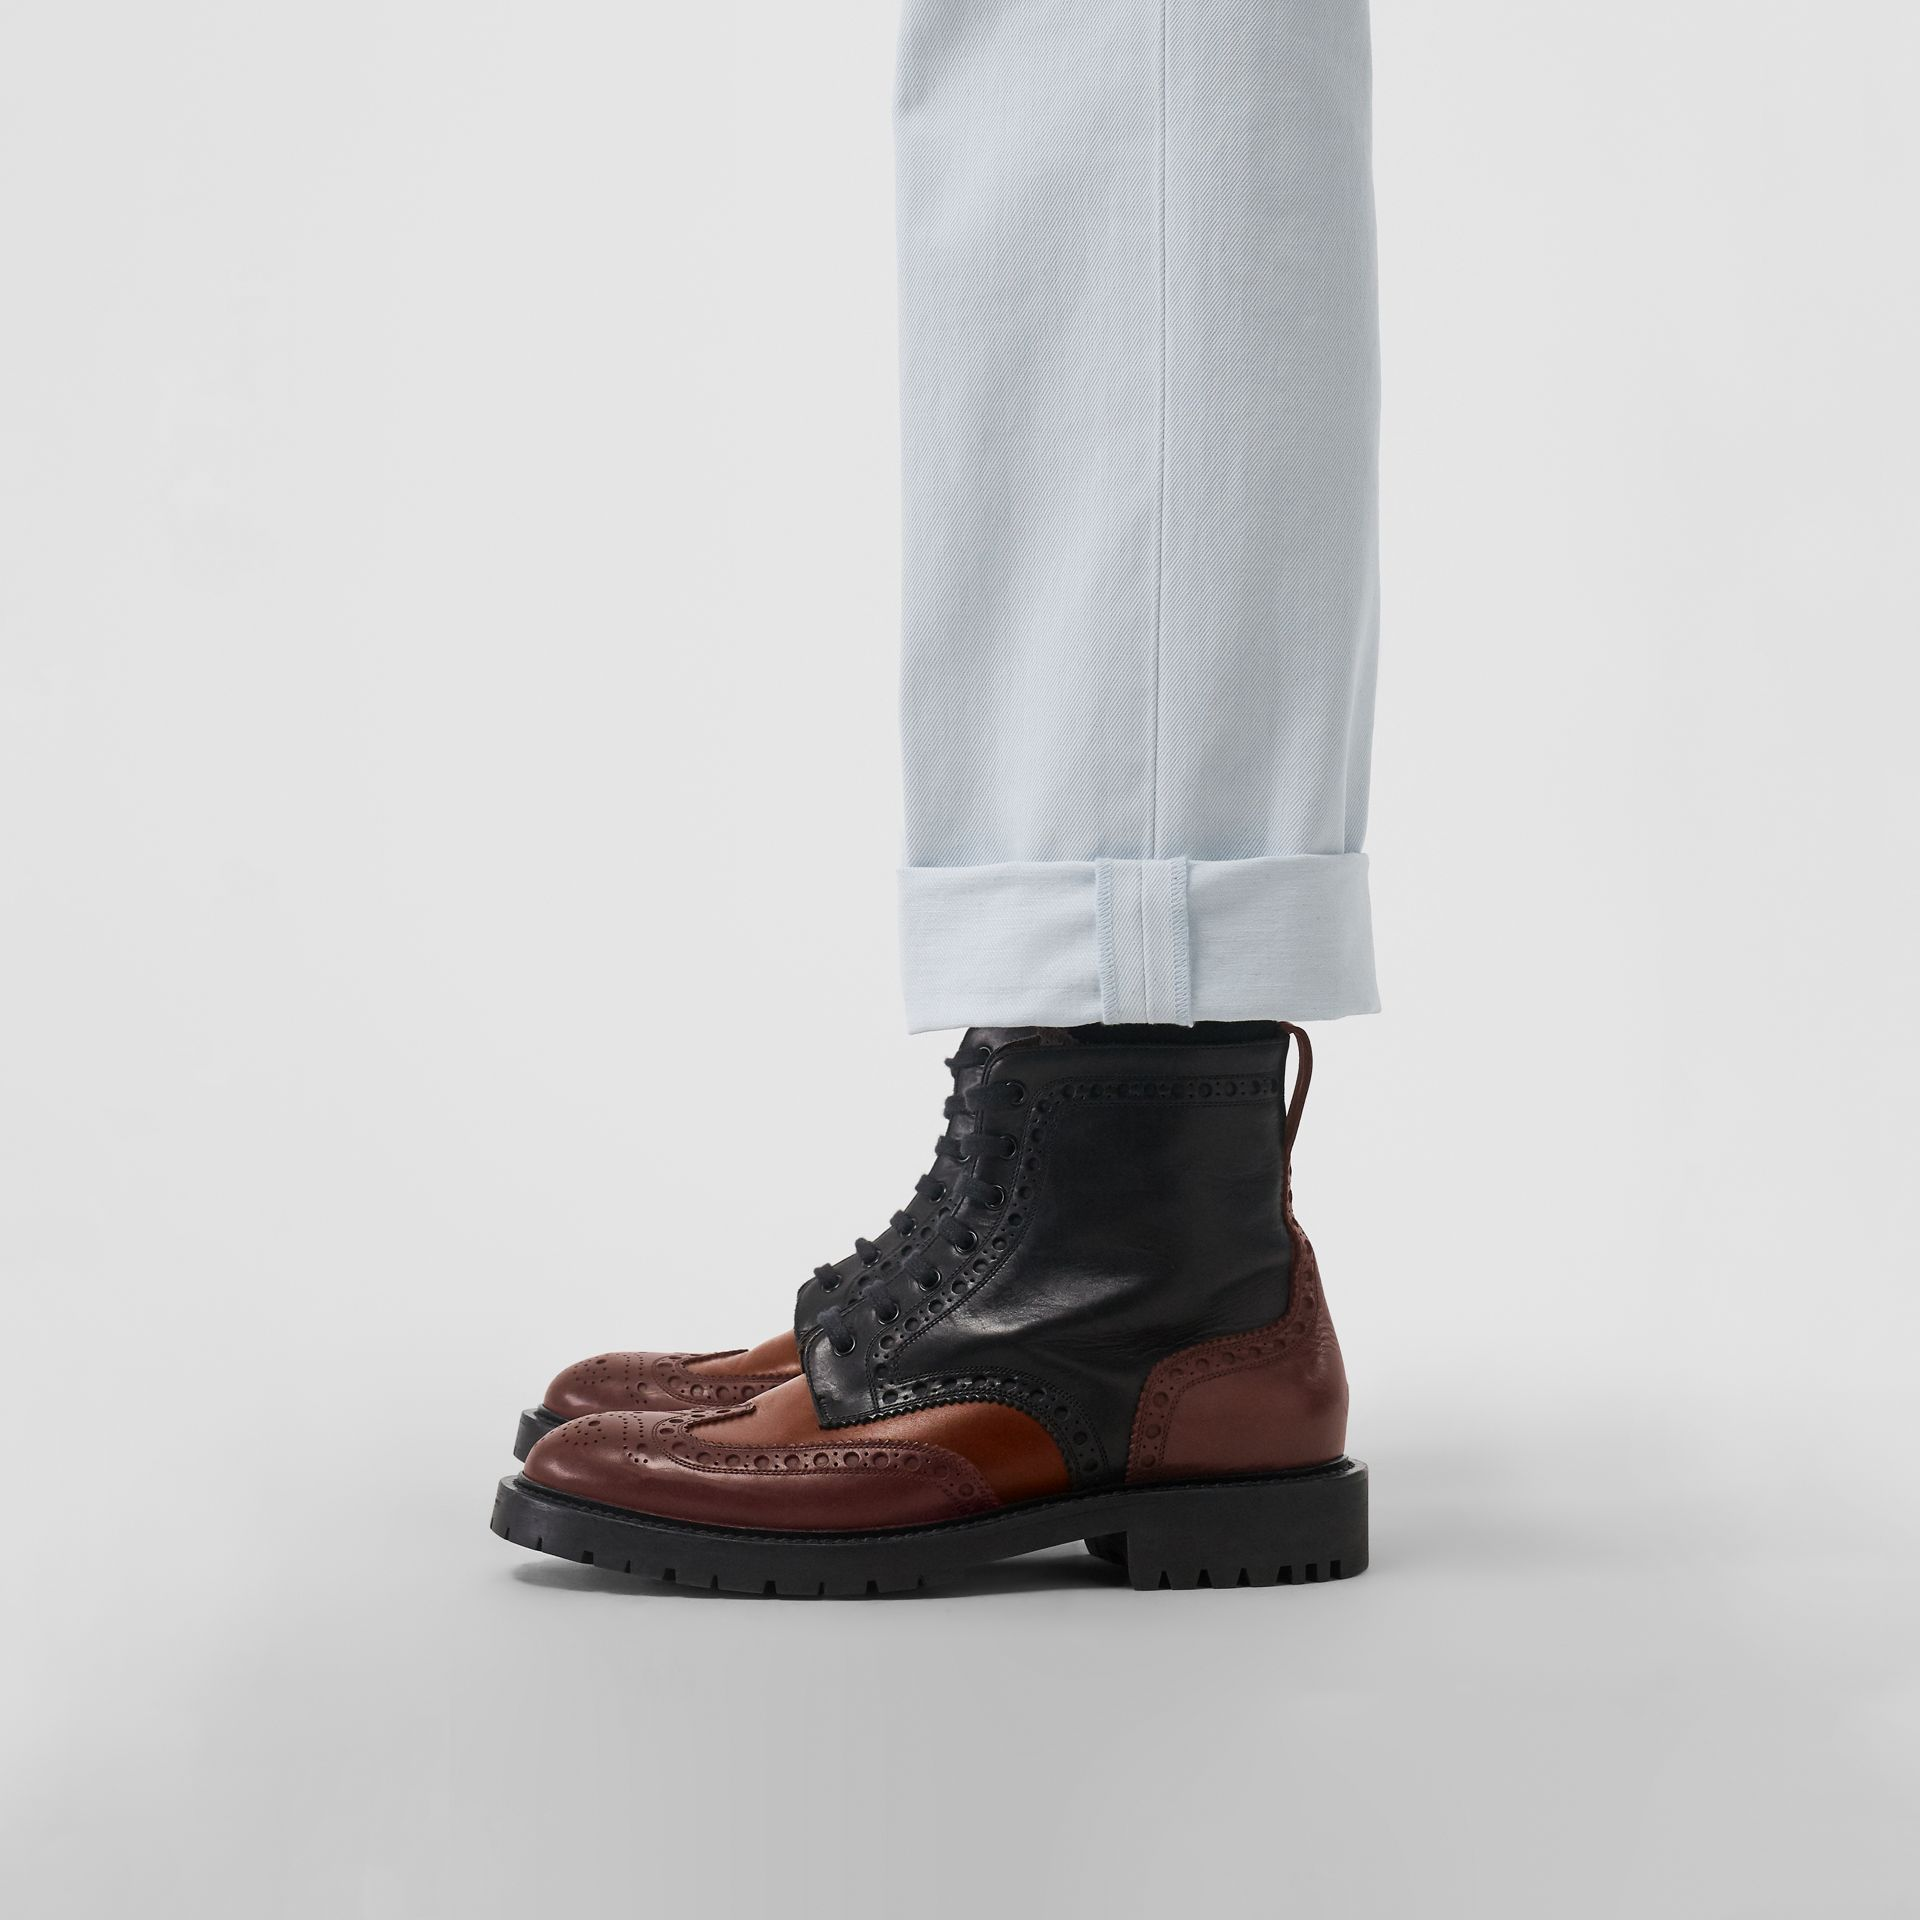 Brogue Detail Leather Boots in Black/garnet - Men | Burberry Canada - gallery image 2